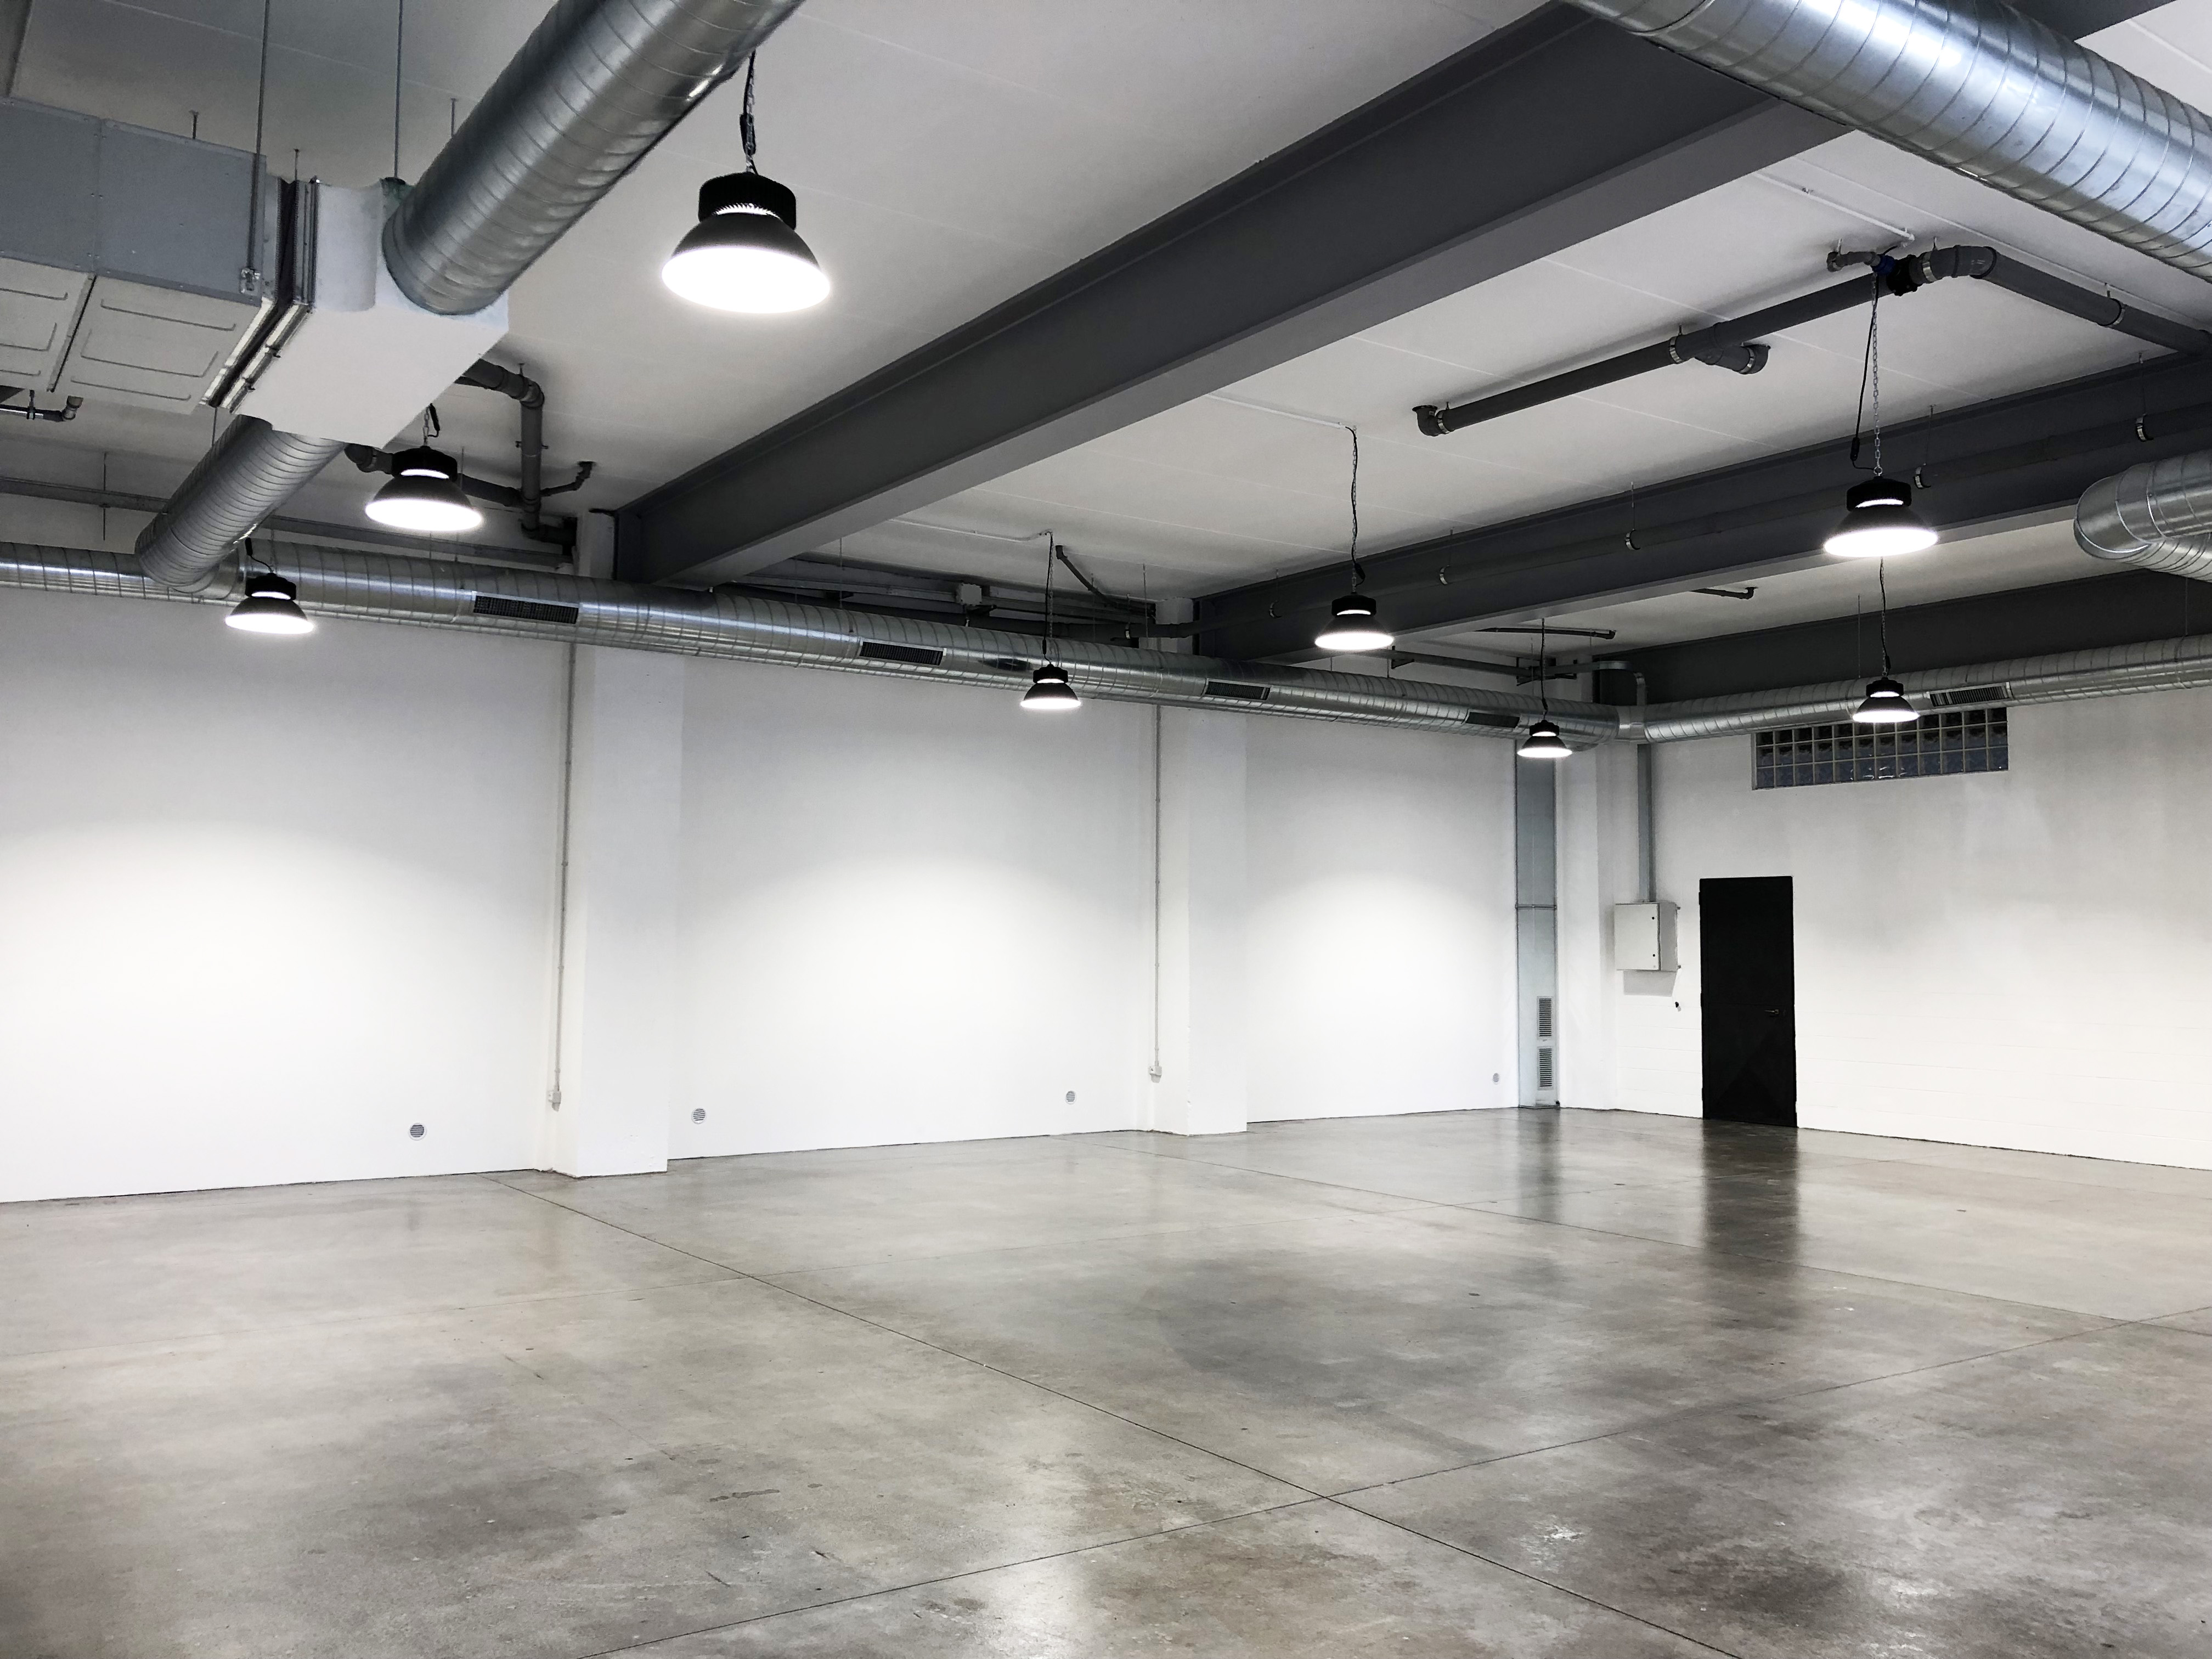 Officina3 - Open space, Spazio industriale di 200mq in Via Tortona 31  | location disallestita 2